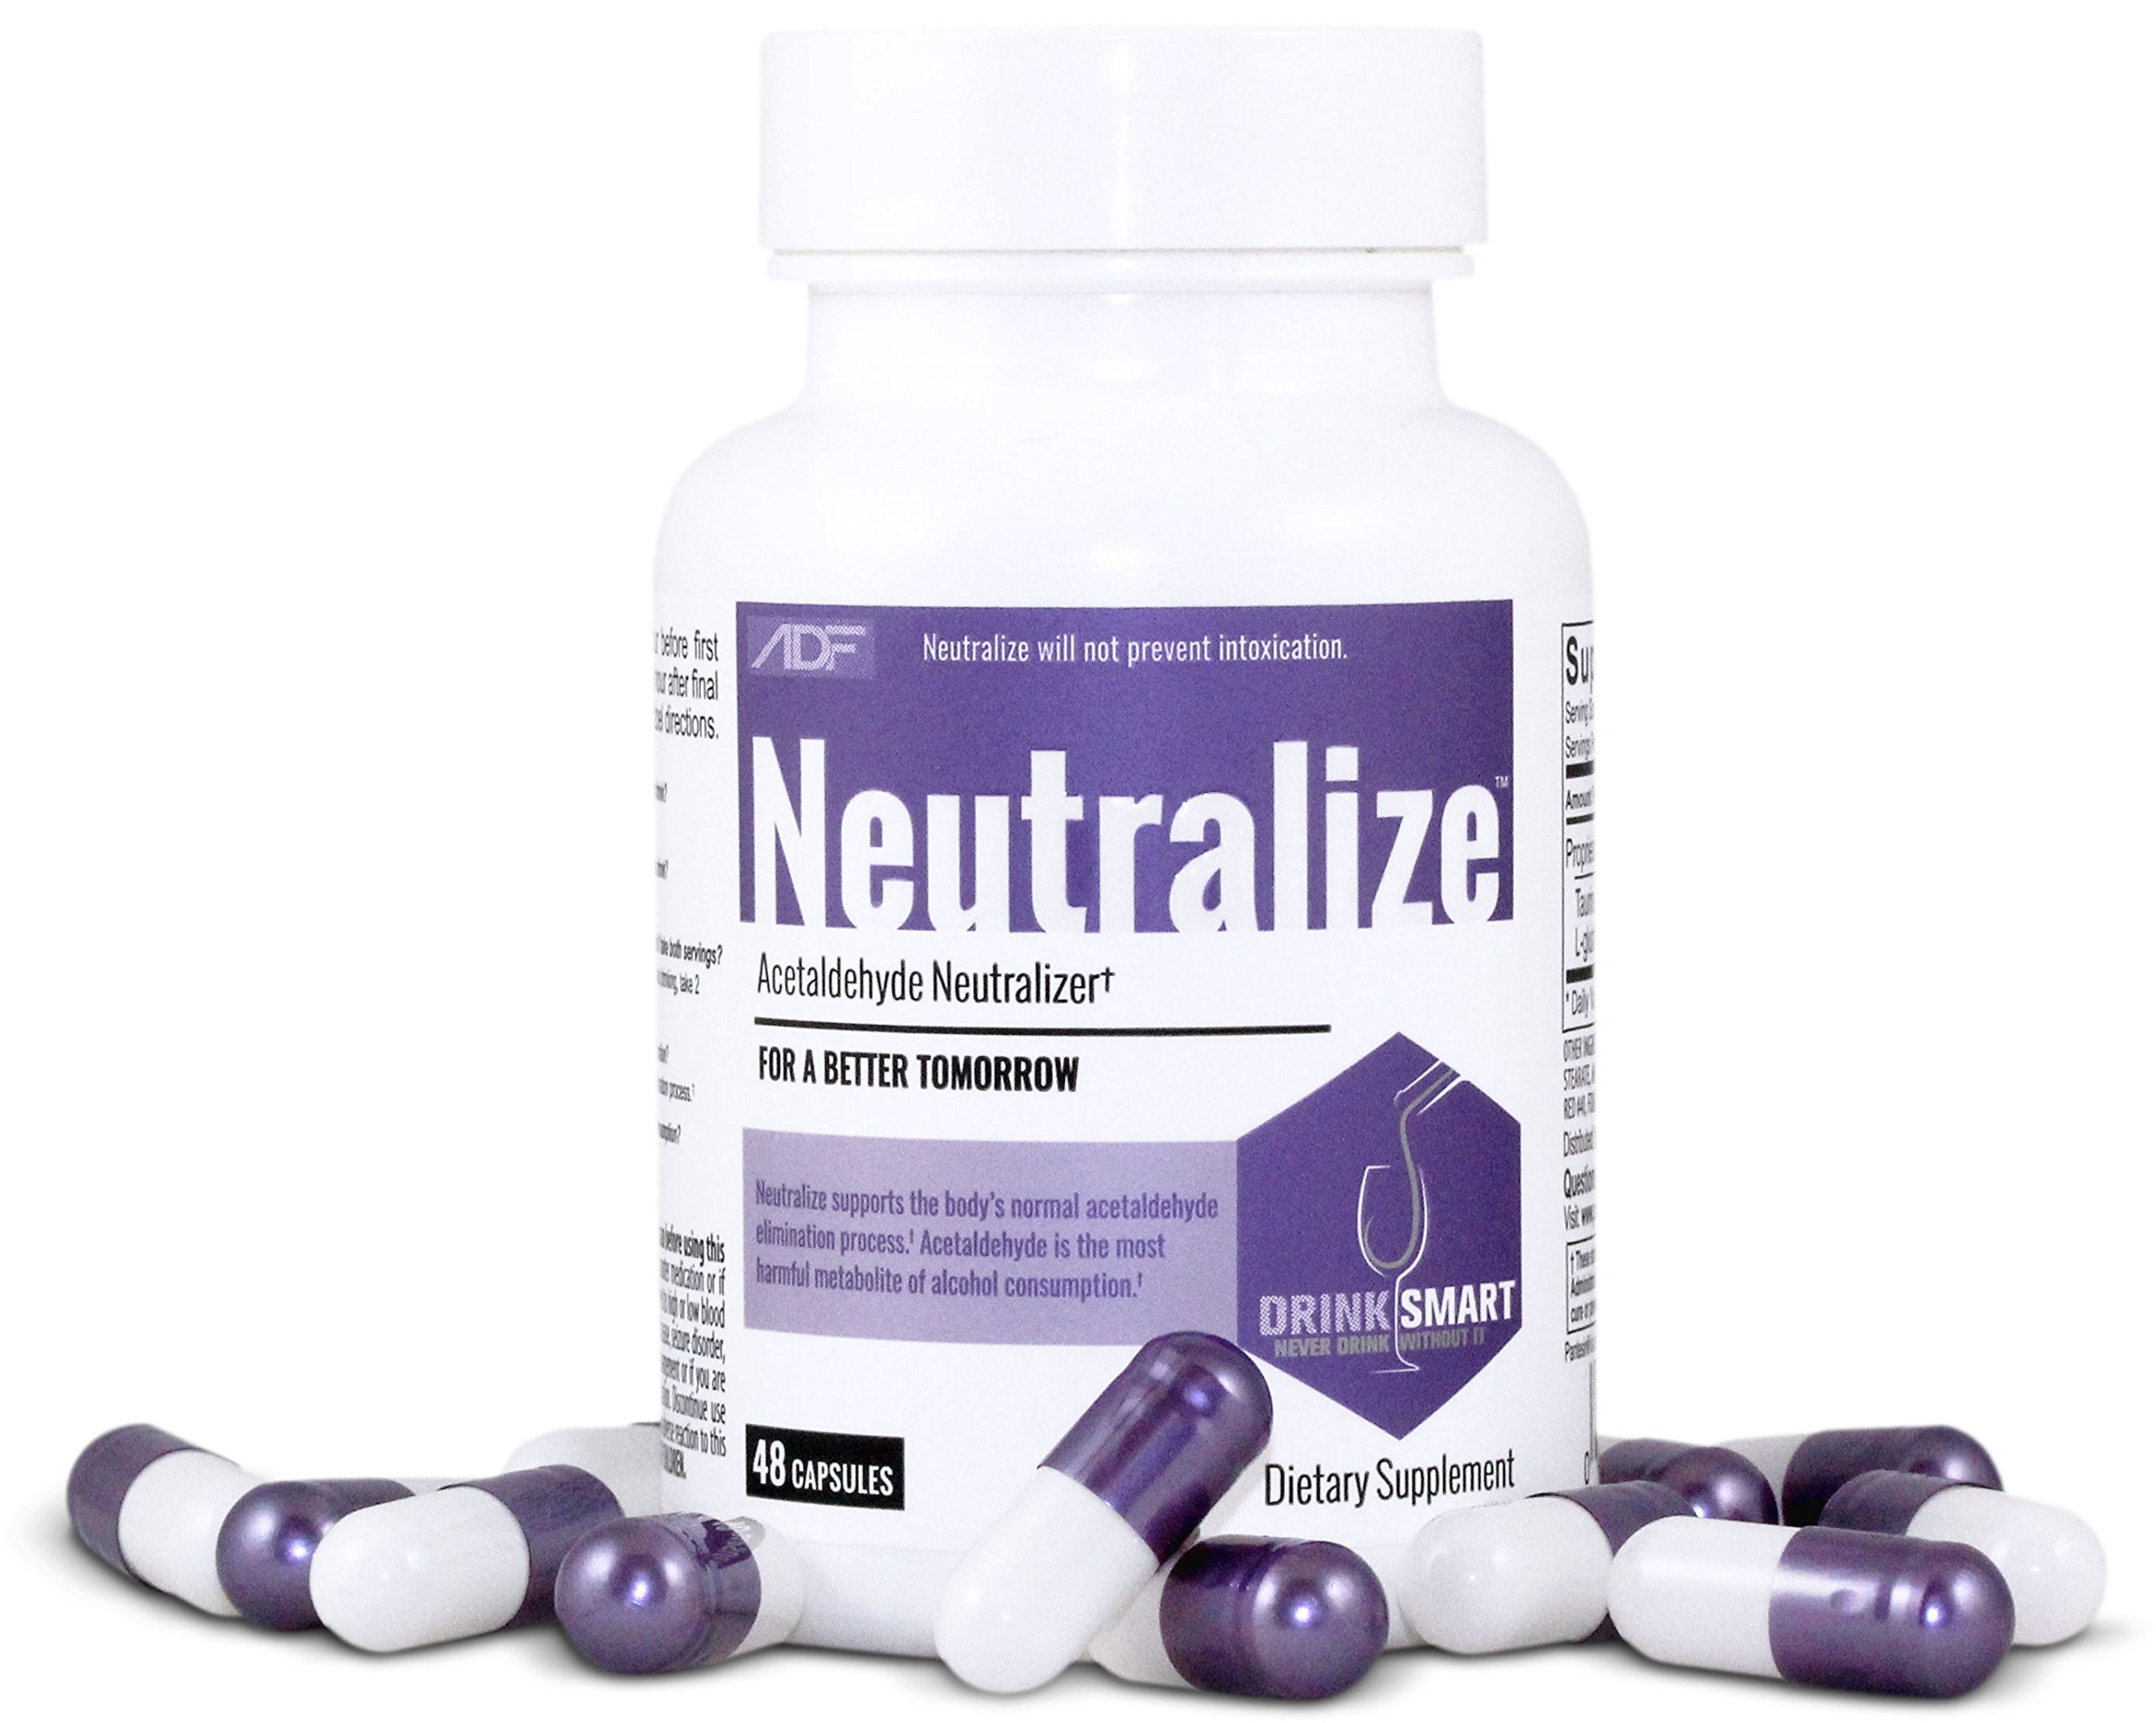 Neutralize Supports Acetaldehyde Metabolism. Neutralize Works with Your Body's Natural Acetaldehyde Elimination Process. Drink Smart. Never Drink Without It. Does not Prevent Intoxication.